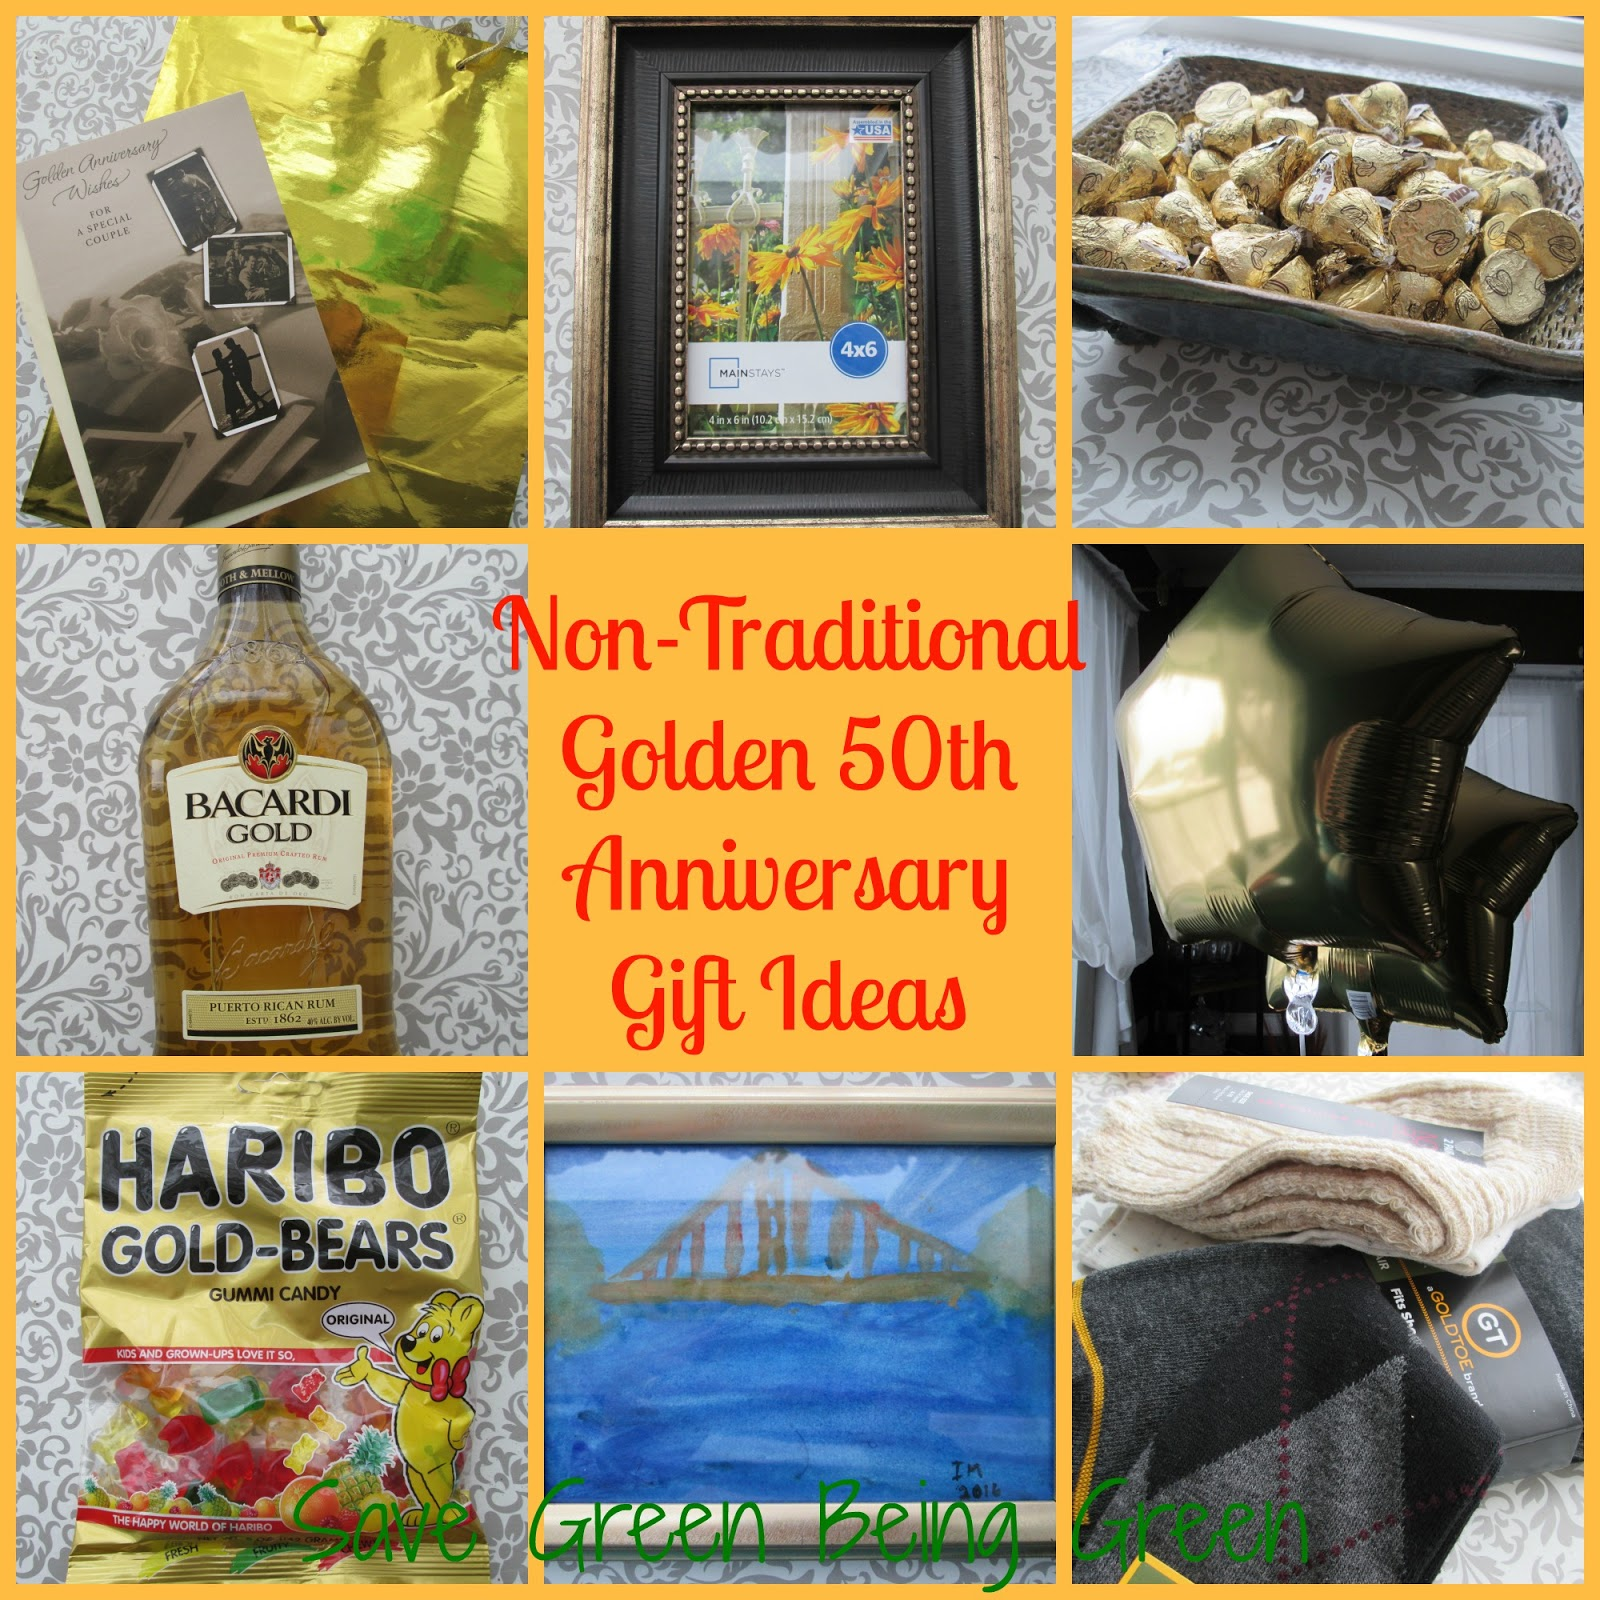 Gift Ideas For A 50th Wedding Anniversary: Save Green Being Green: Non-Traditional Golden 50th